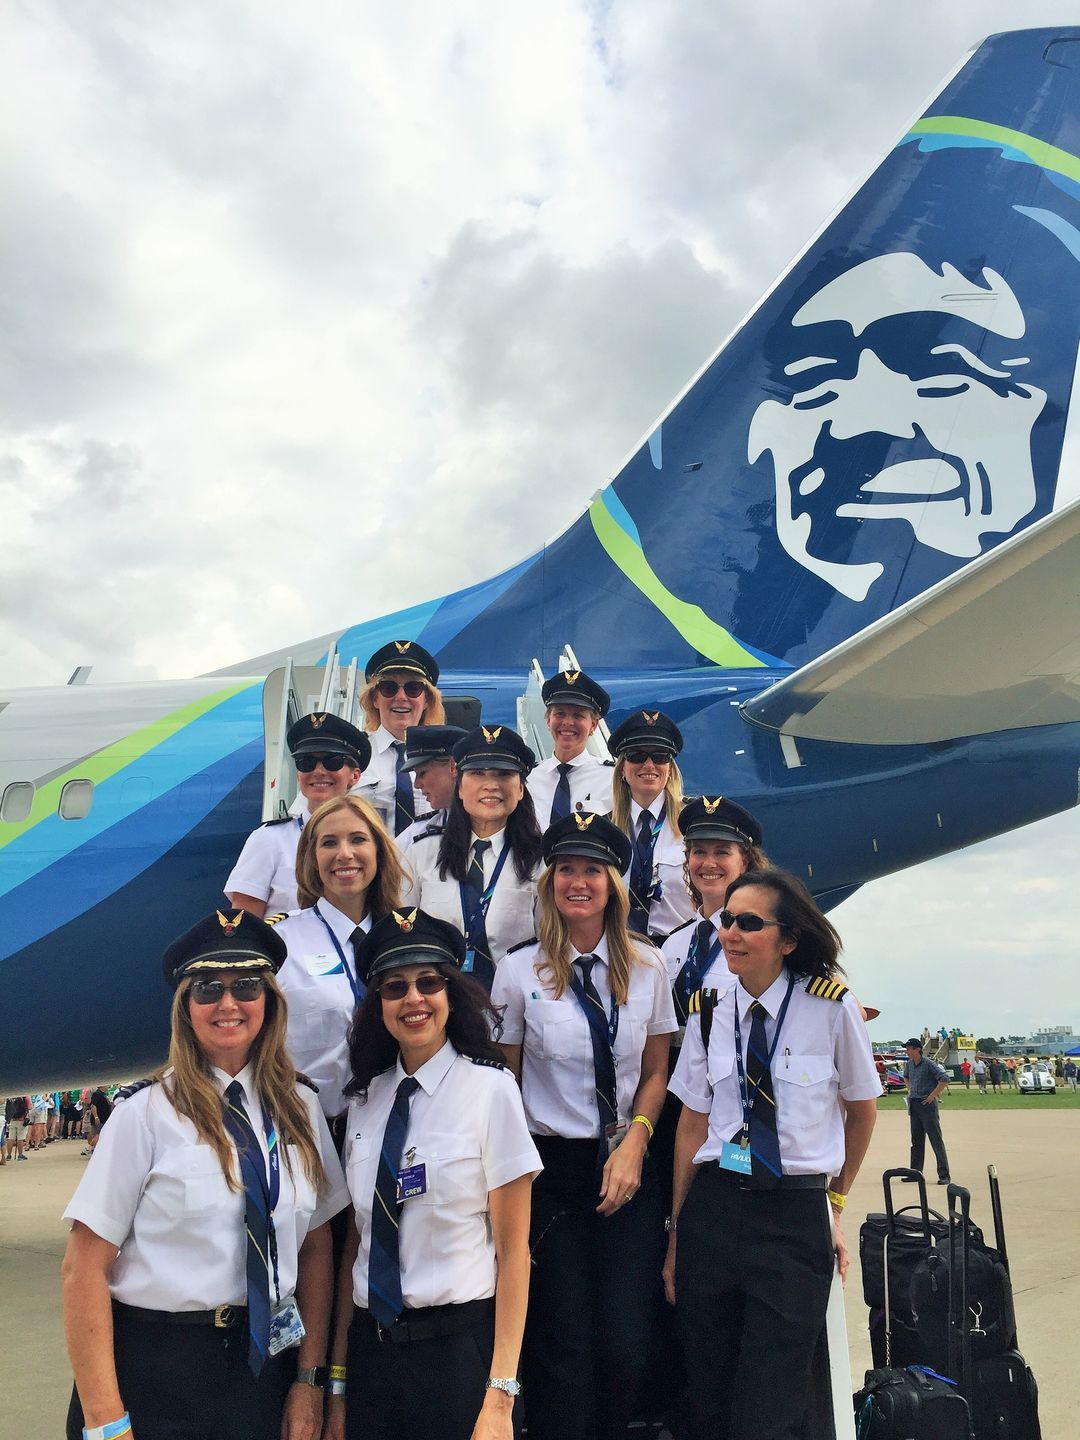 Oshkosh airshow: Women take center stage at 'fly-in'   AVIATION